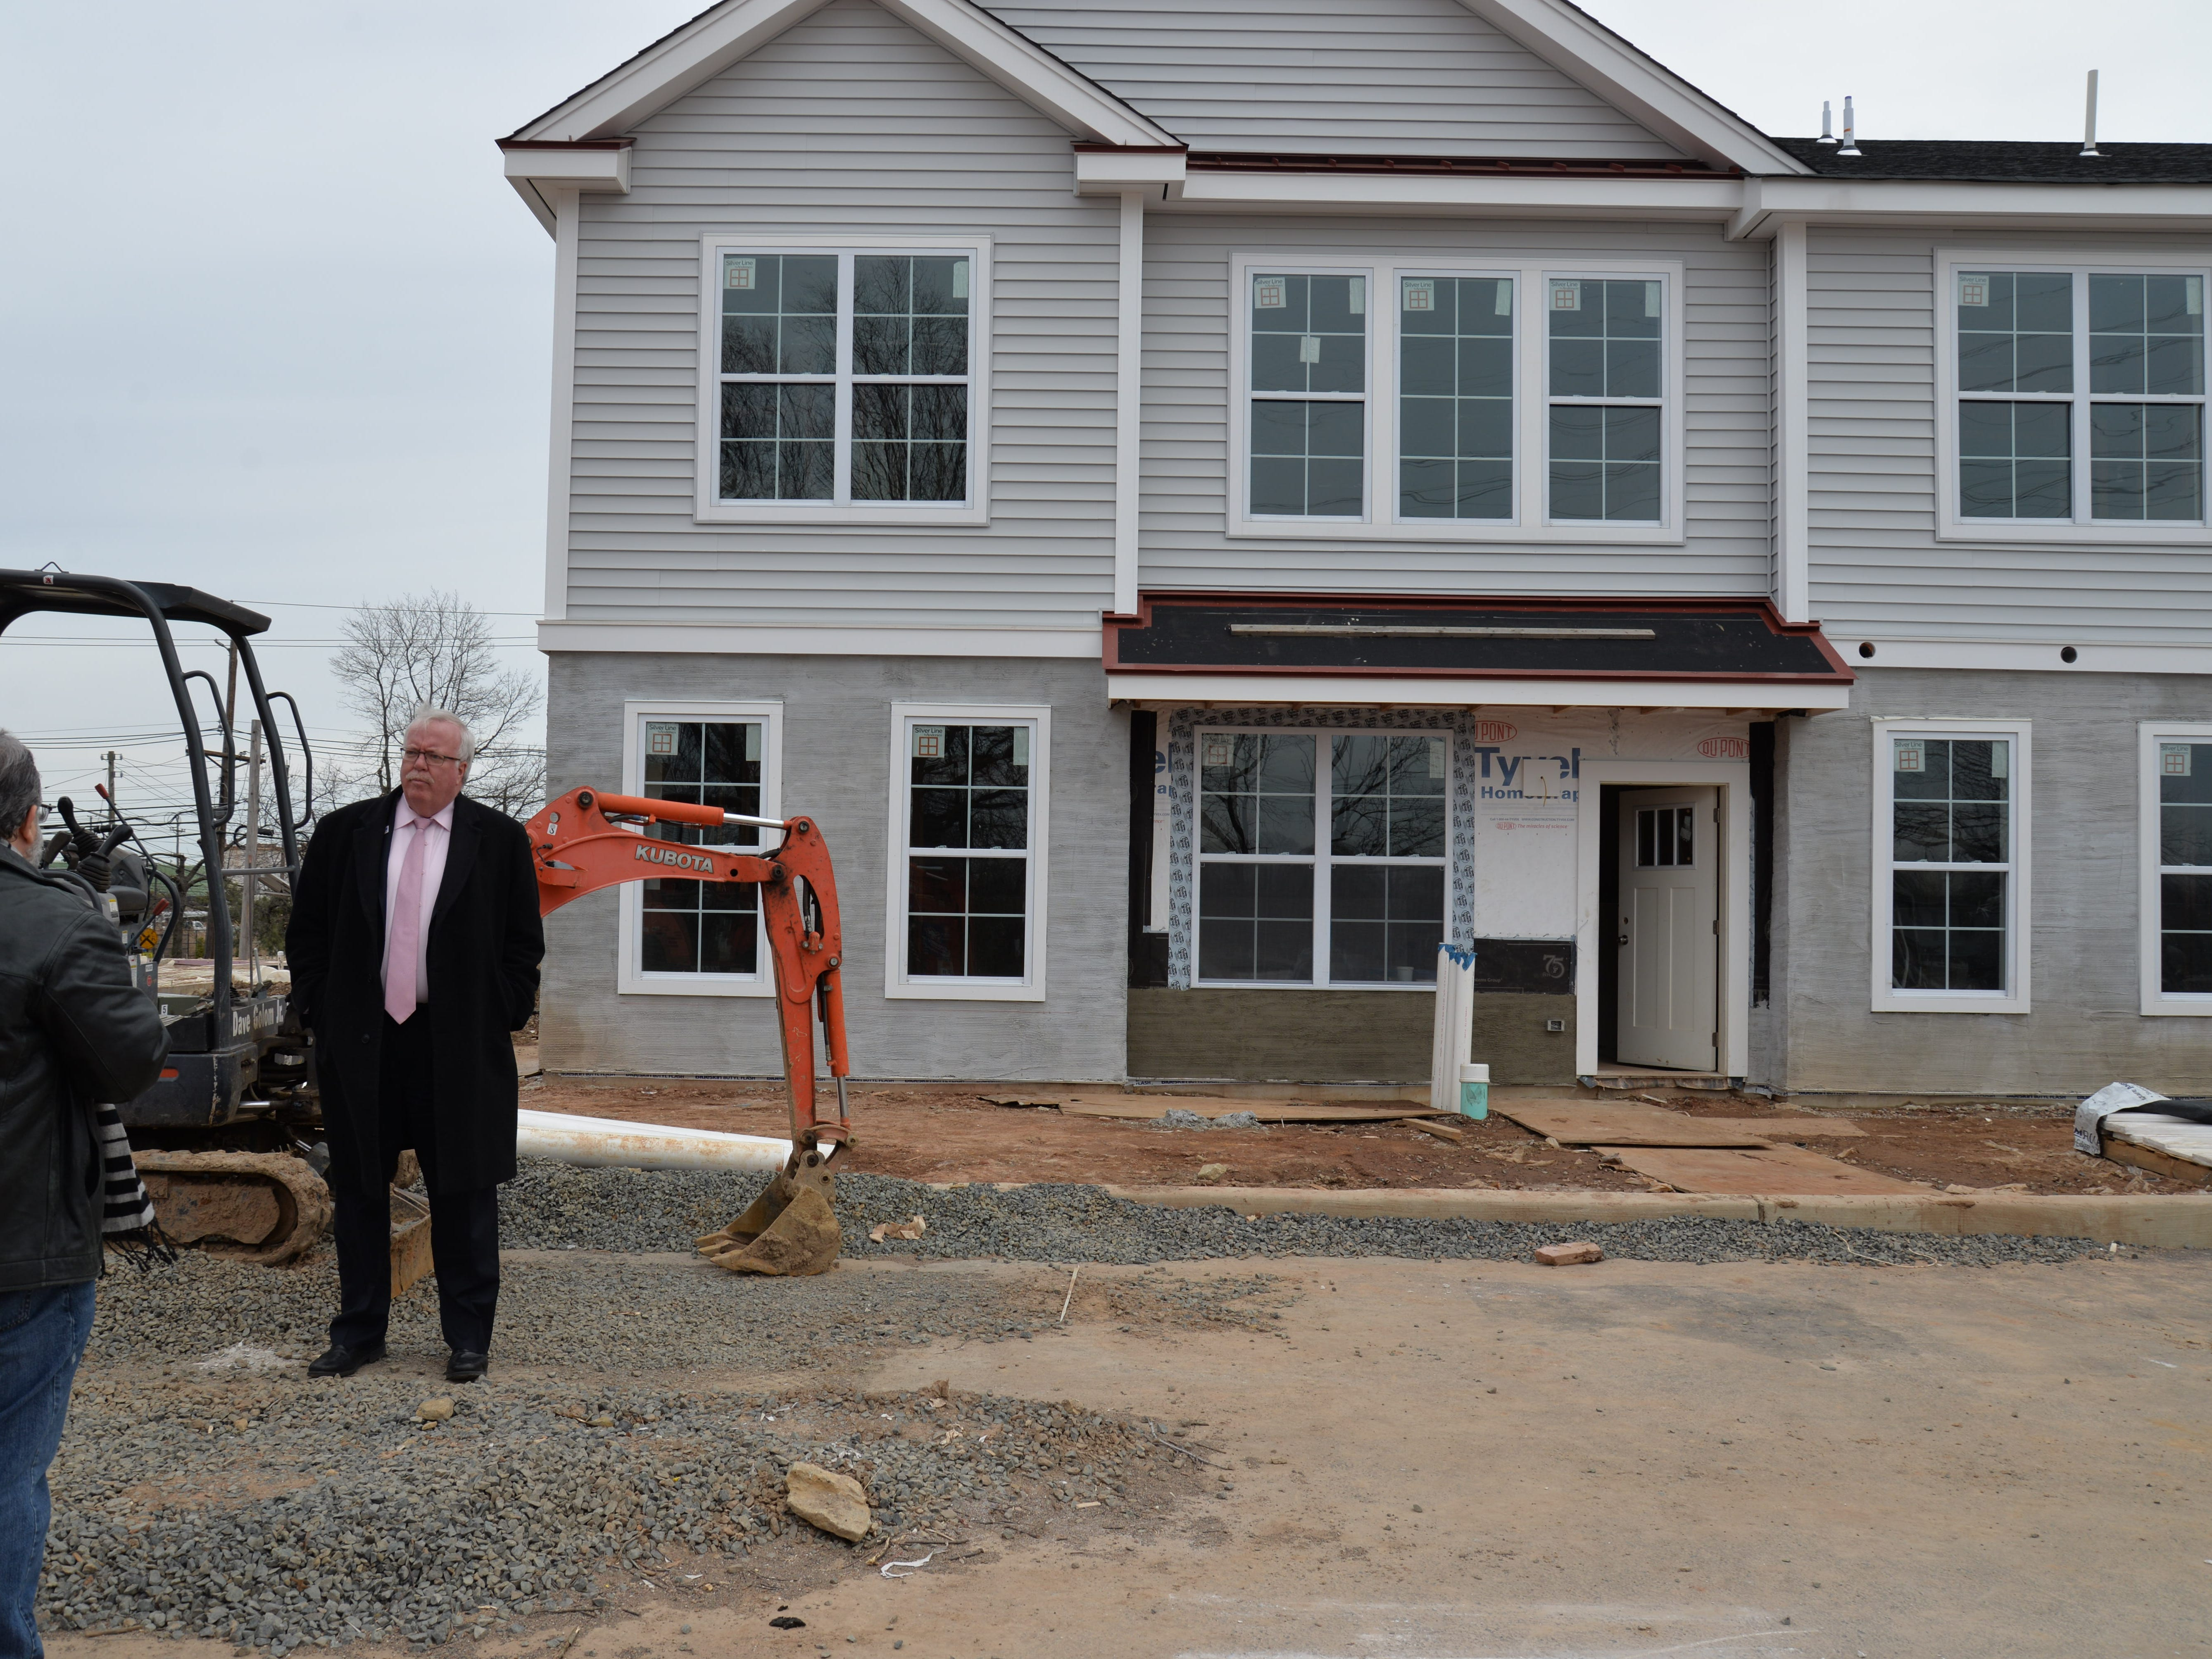 Woodbridge Mayor John McCormac chats with Reporter Bob Makin about one of many residential construction projects in the township. Developed by Falcon Properties, this is one is on a portion of the land that Hess formerly operated.